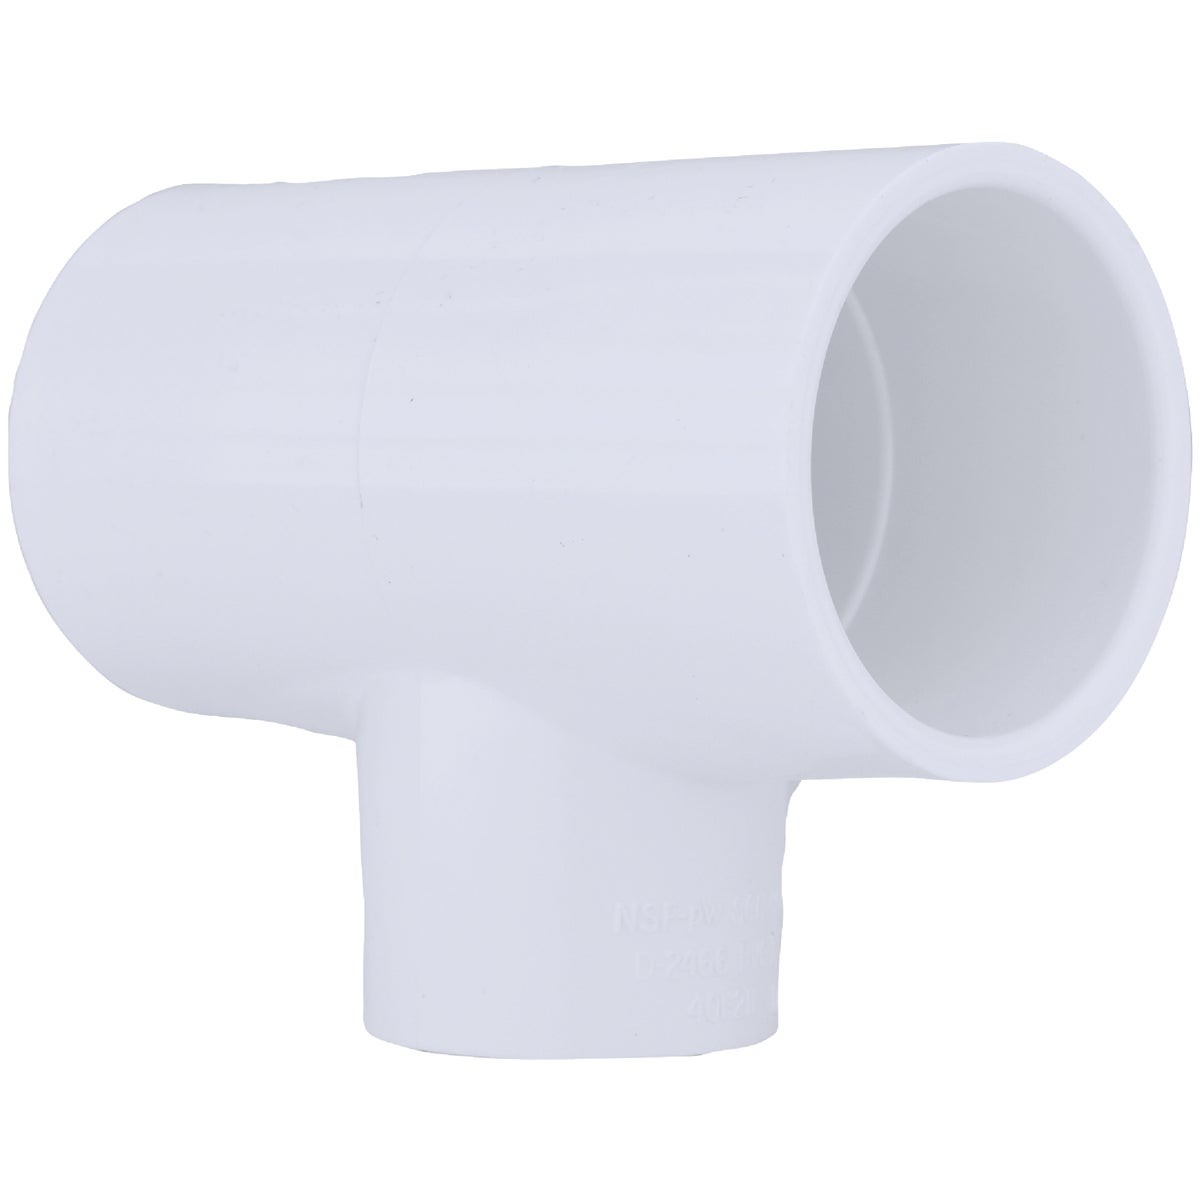 "1-1/2""X1"" SCH40 PVC TEE - 31495 by Genova Inc"